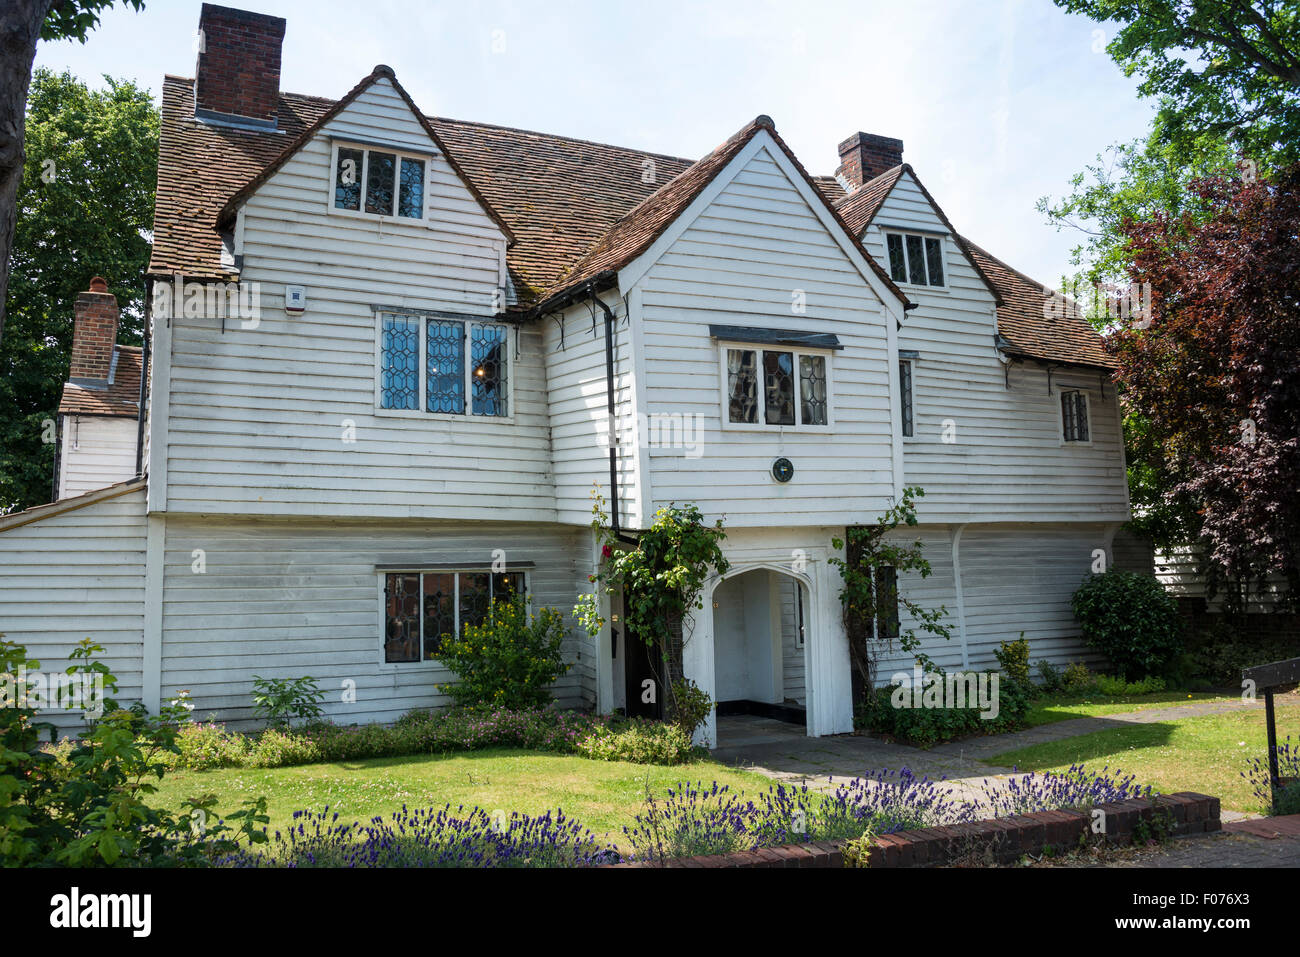 15th Century Whitehall building, The Broadway, Cheam Village, London Borough of Sutton, Greater London, England, - Stock Image